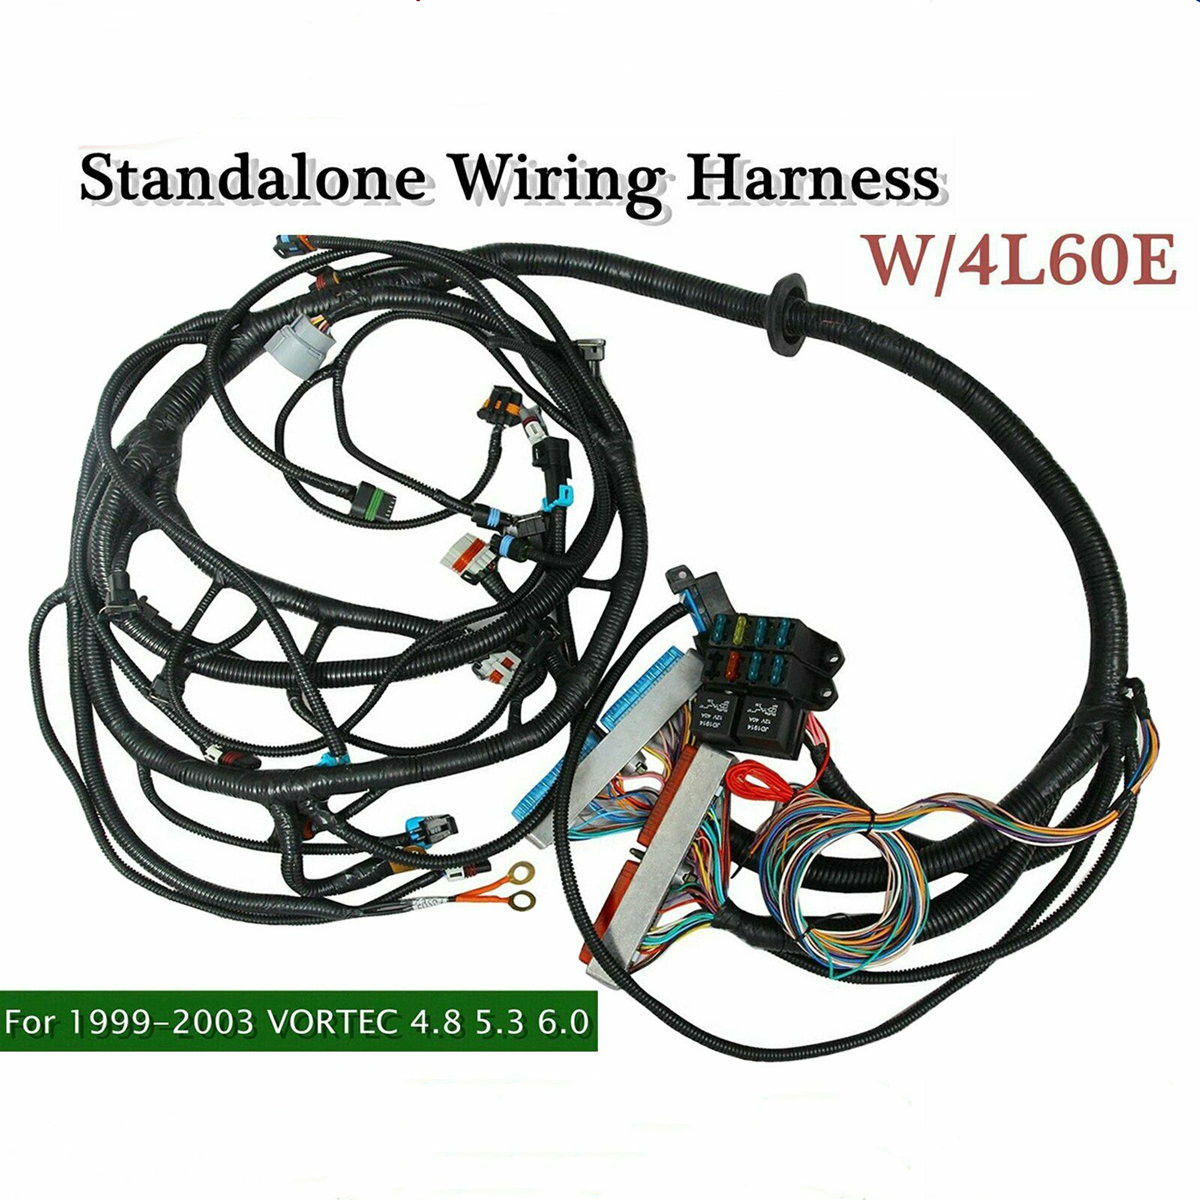 Automotive 1997 2006 Dbc Ls1 Stand Alone Harness W 4l80e 4 8 5 3 6 0 Vortec Drive By Cable Fuel Inject Controls Parts